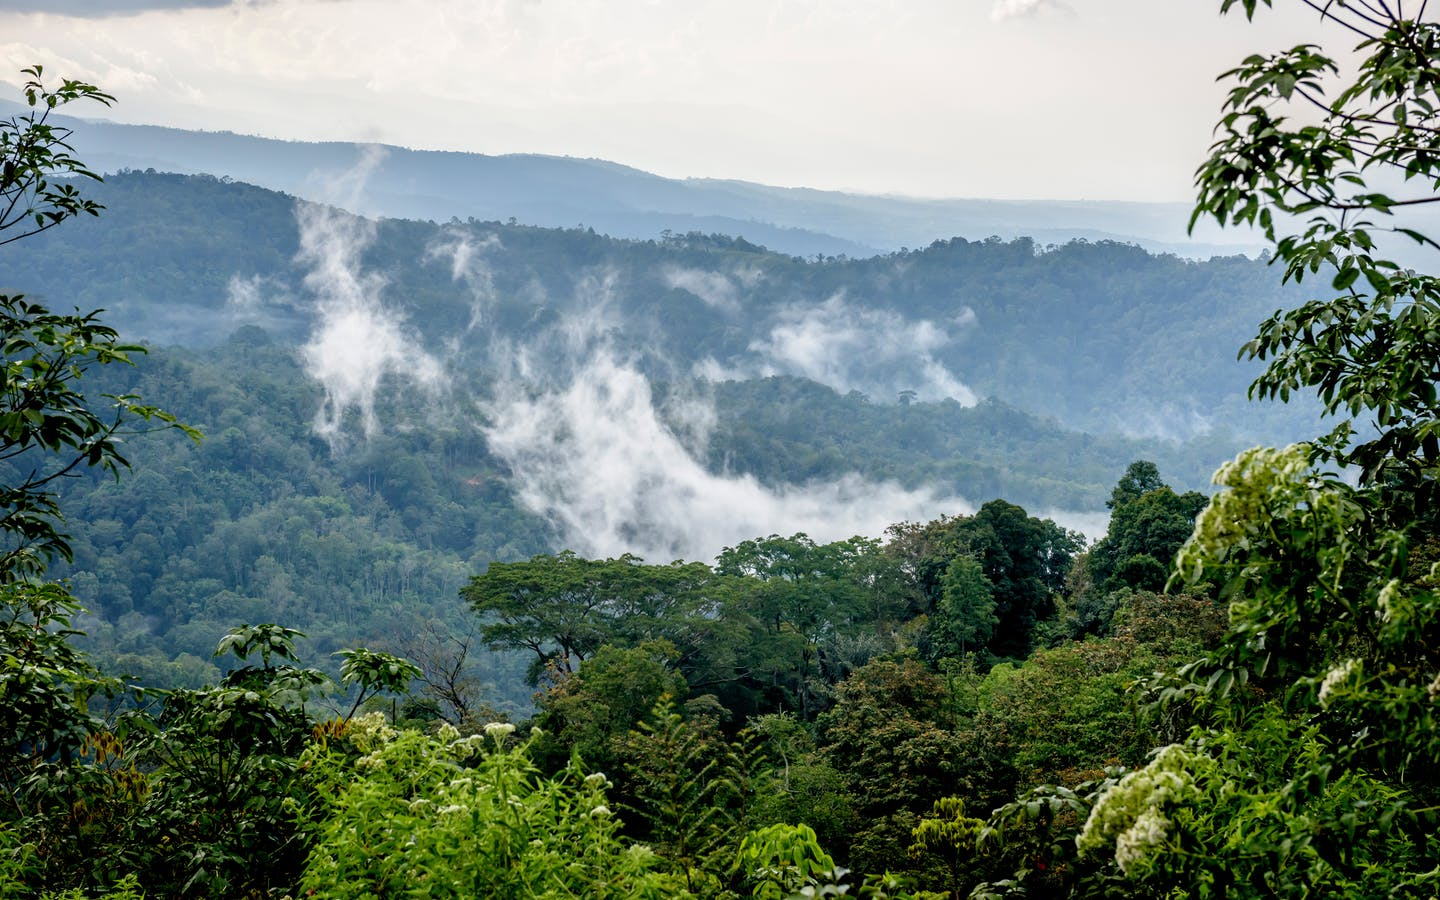 The mists lift after a rainstorm near Batang Gadis National Park in Mandailing Natal, North Sumatra.